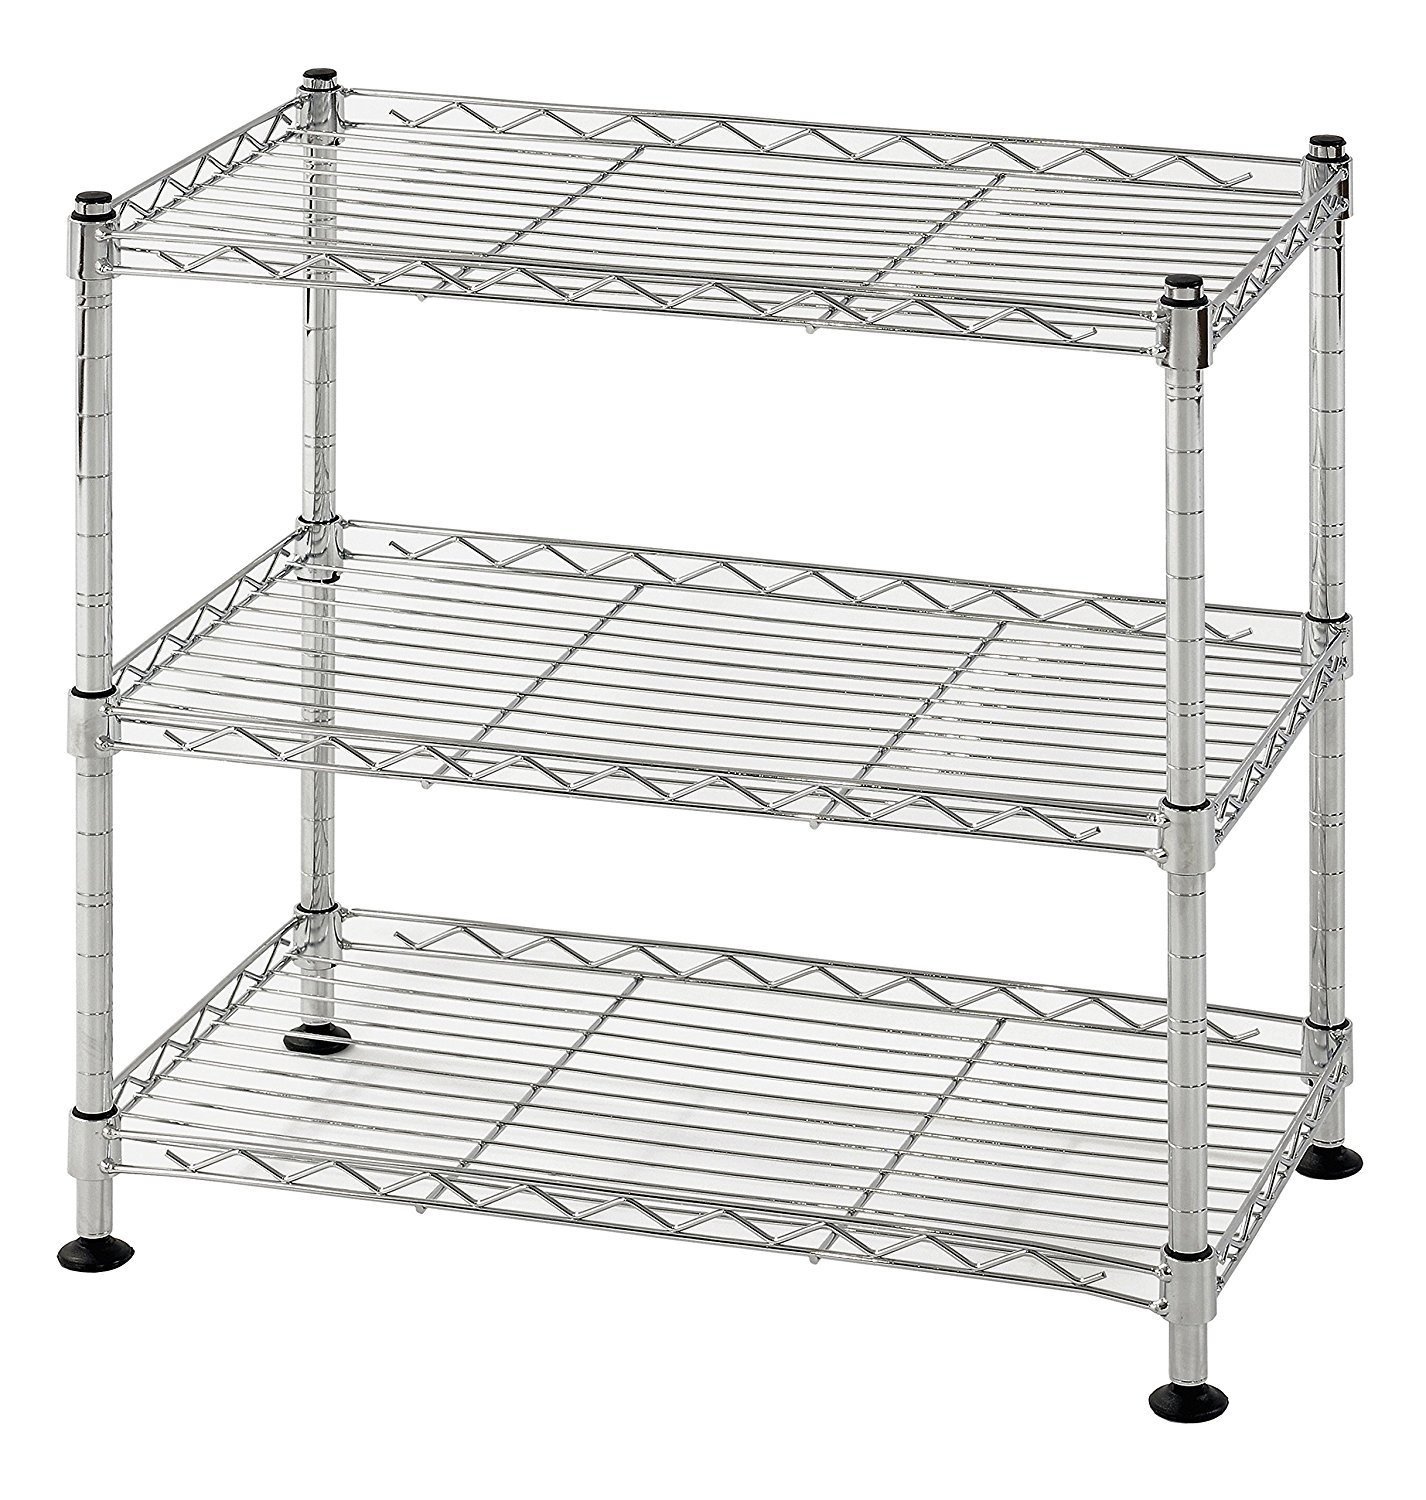 Muscle Rack WS181018-C Steel Adjustable Wire Shelving, 3 Shelves, Chrome, 18'' Height, 18'' width, 264 lb. Load Capacity (1.PACK) by Muscle Rack (Image #1)